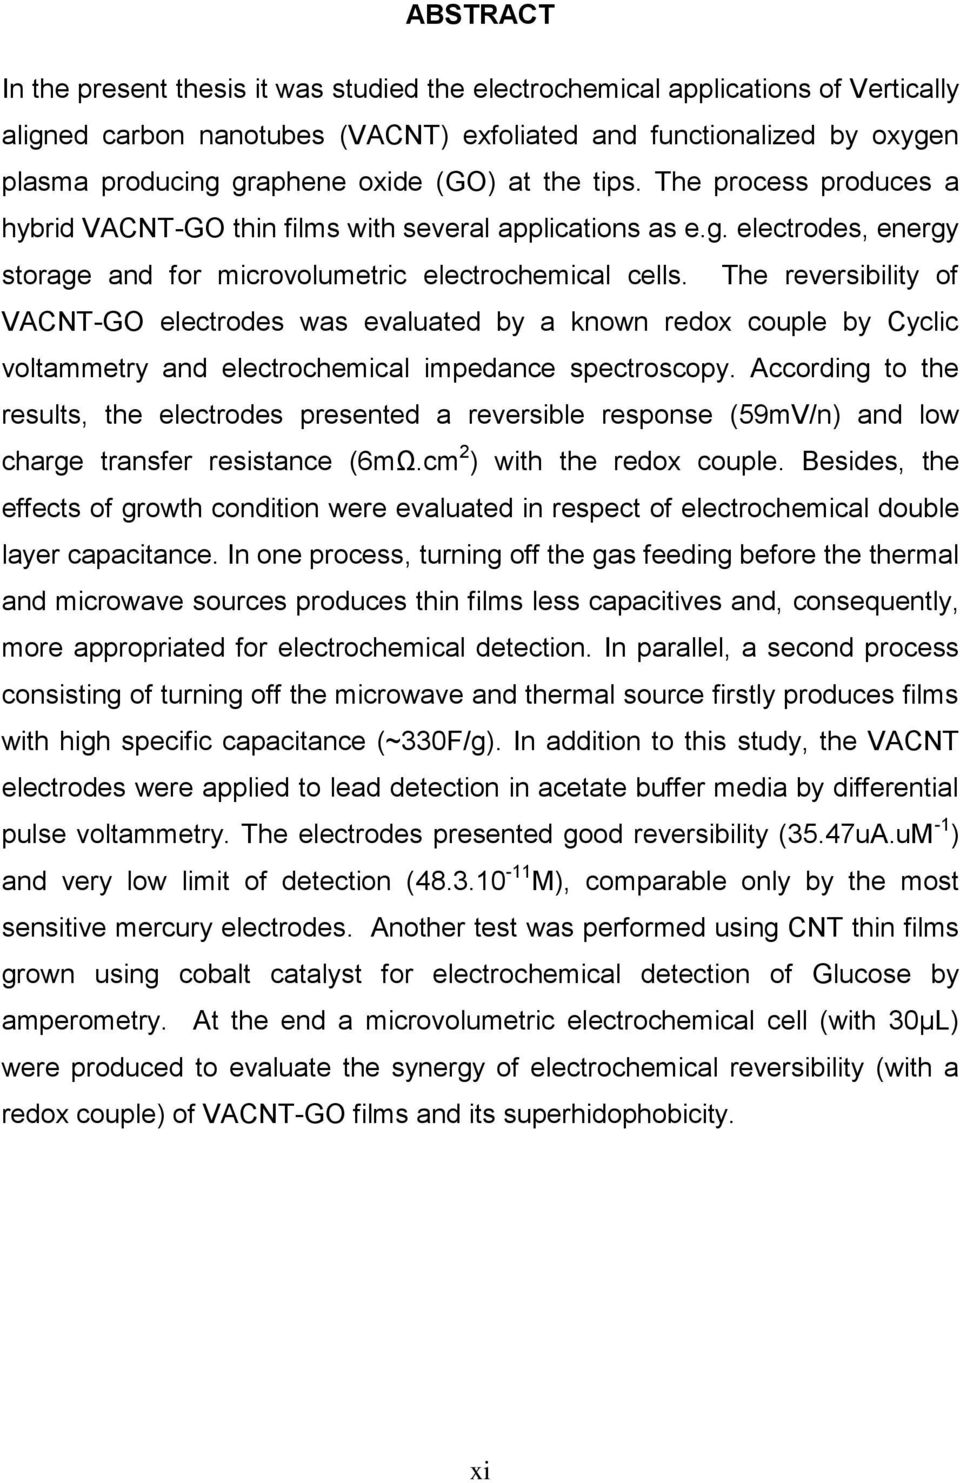 The reversibility of VACNT-GO electrodes was evaluated by a known redox couple by Cyclic voltammetry and electrochemical impedance spectroscopy.